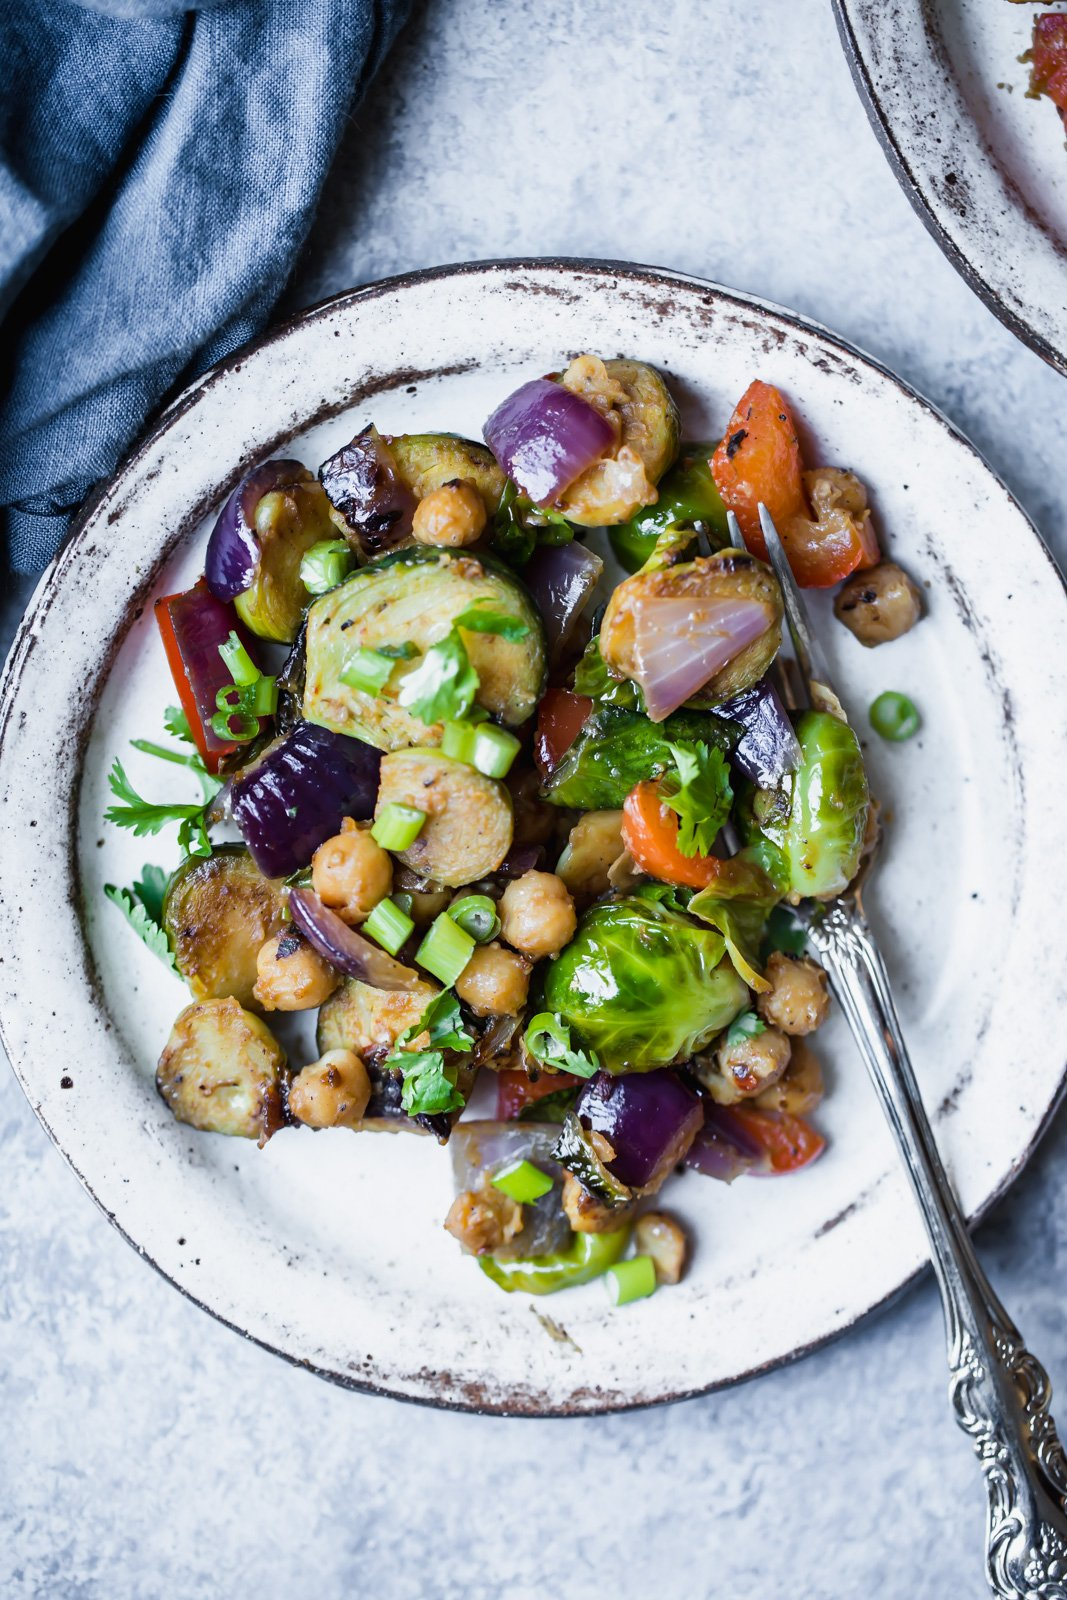 chickpea and brussels sprouts stir fry on a plate